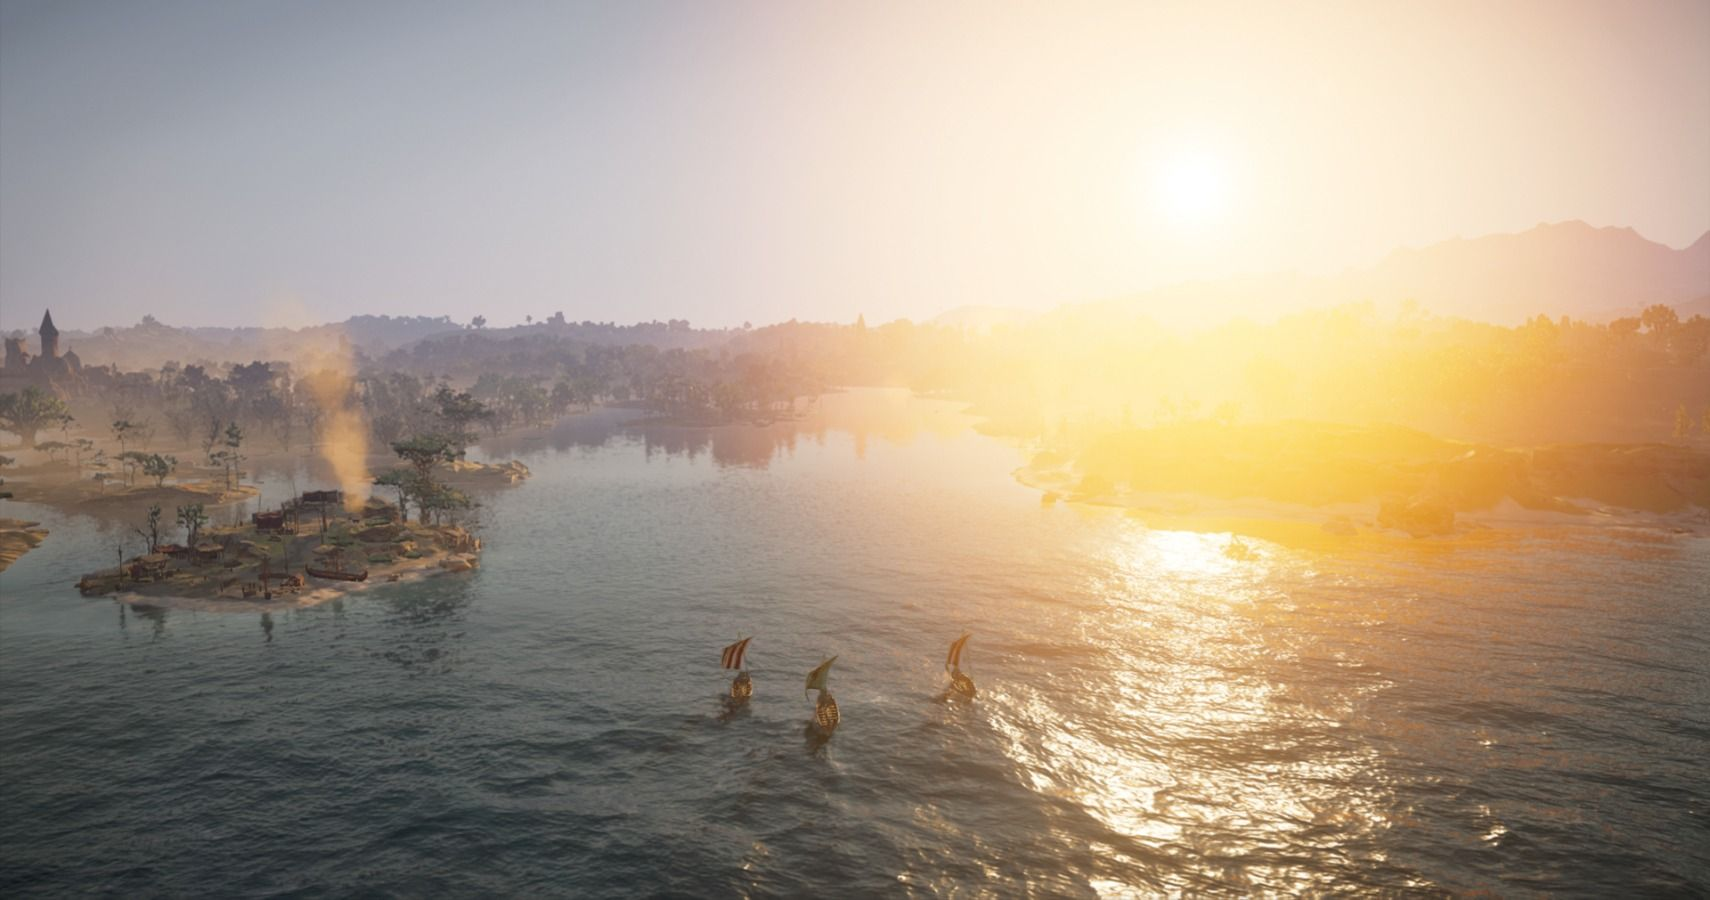 Assassin's Creed Valhalla The Seas Of Fate Guide